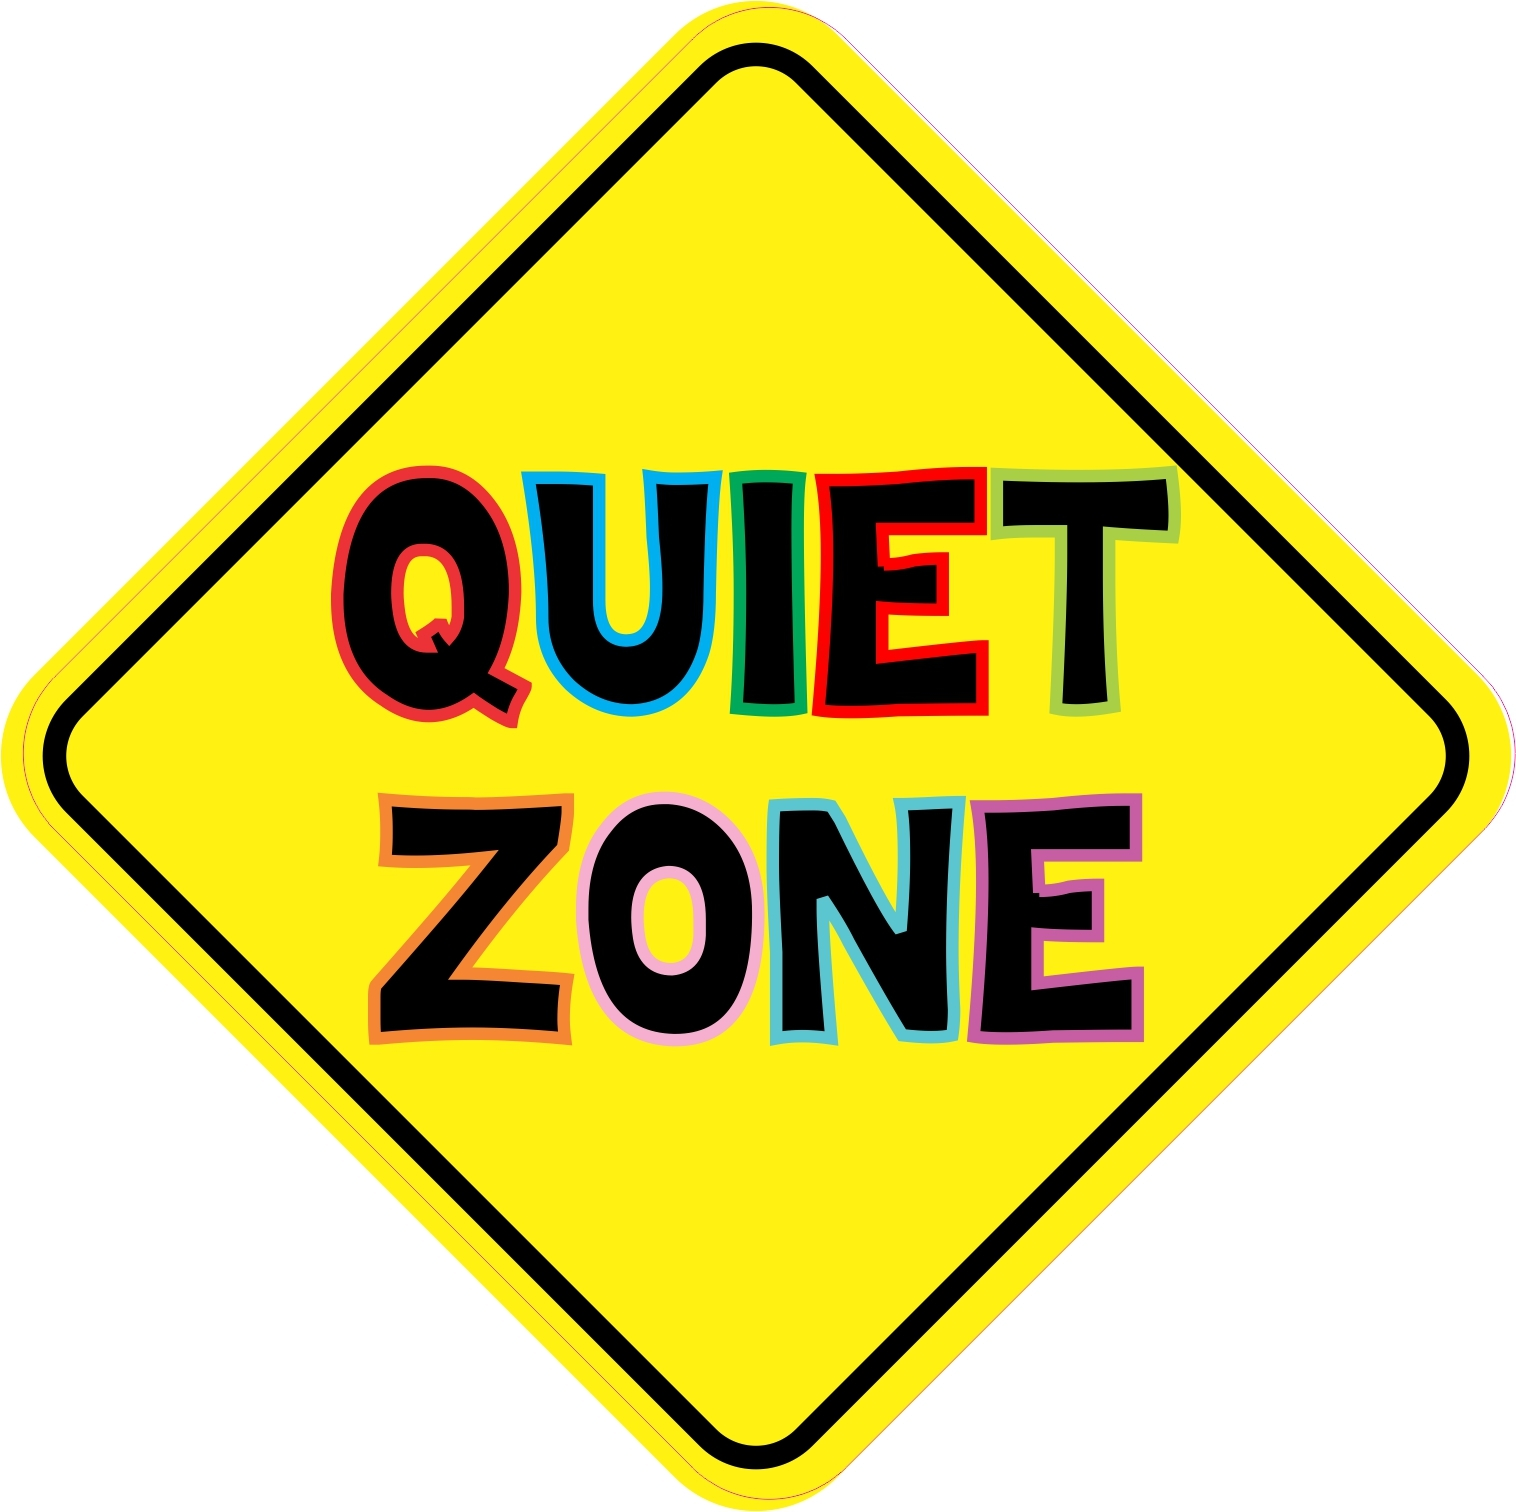 Library clipart quiet place Shhh Download Clip on Quiet